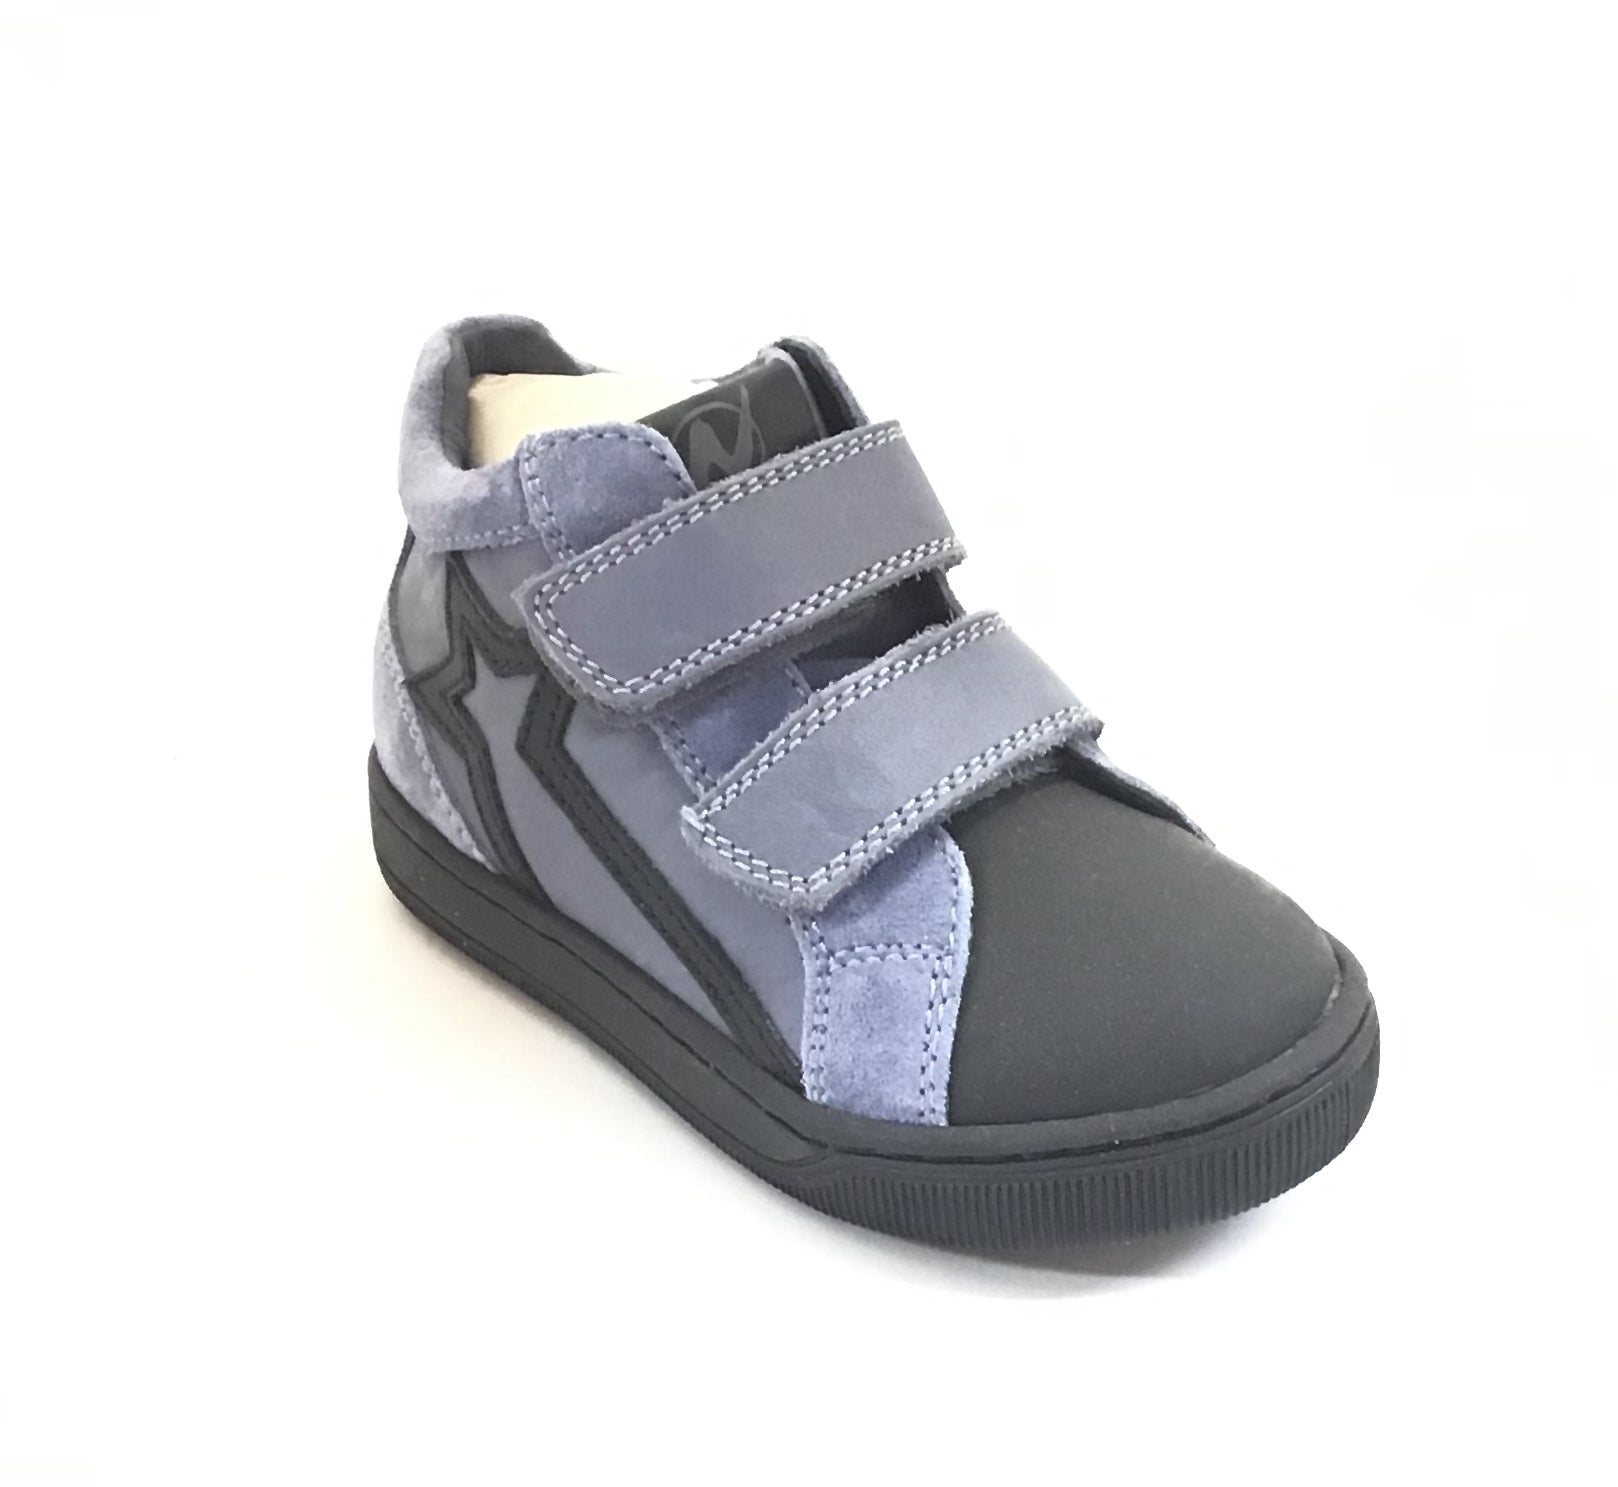 Naturino Light Blue and Black Shoe with Double Velcro